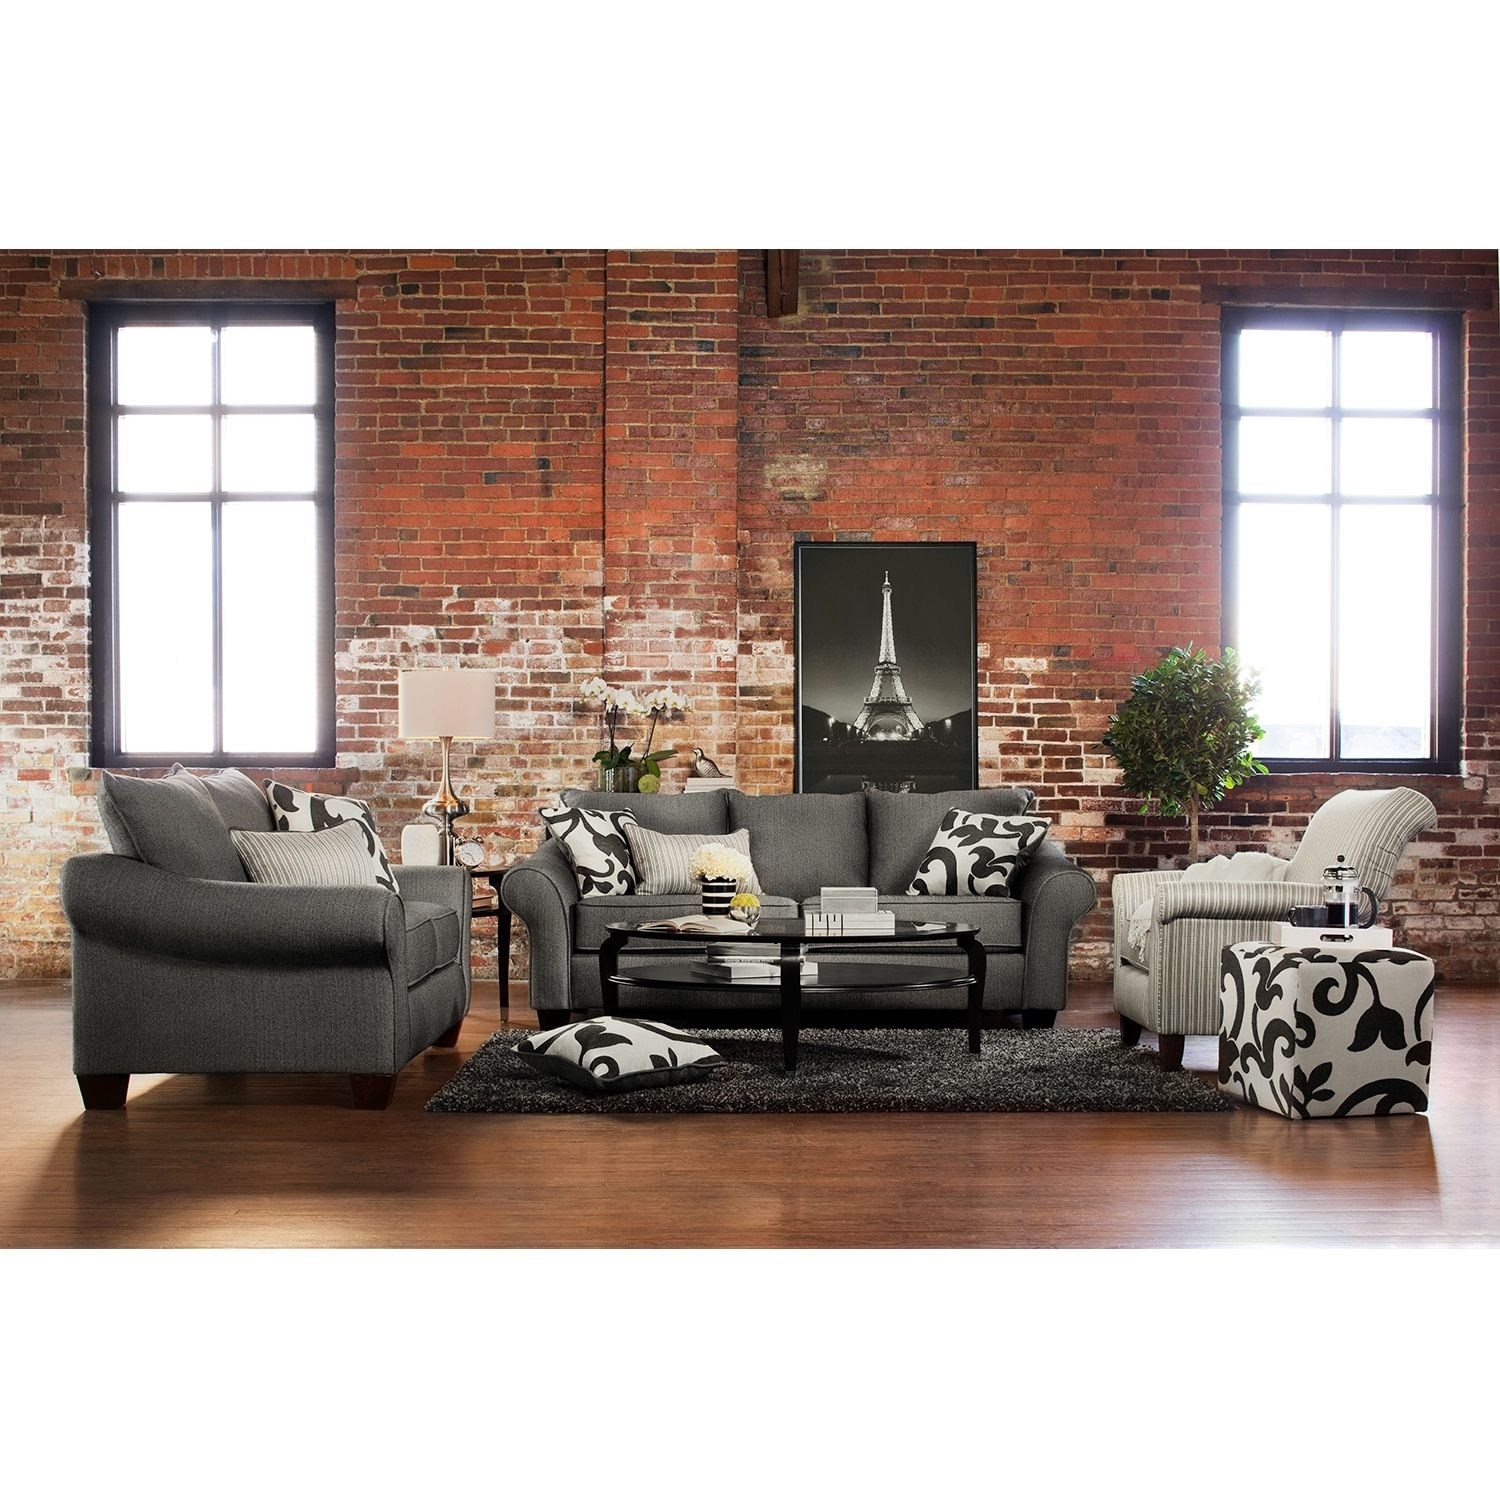 Living Room Furniture, Furniture, Value City